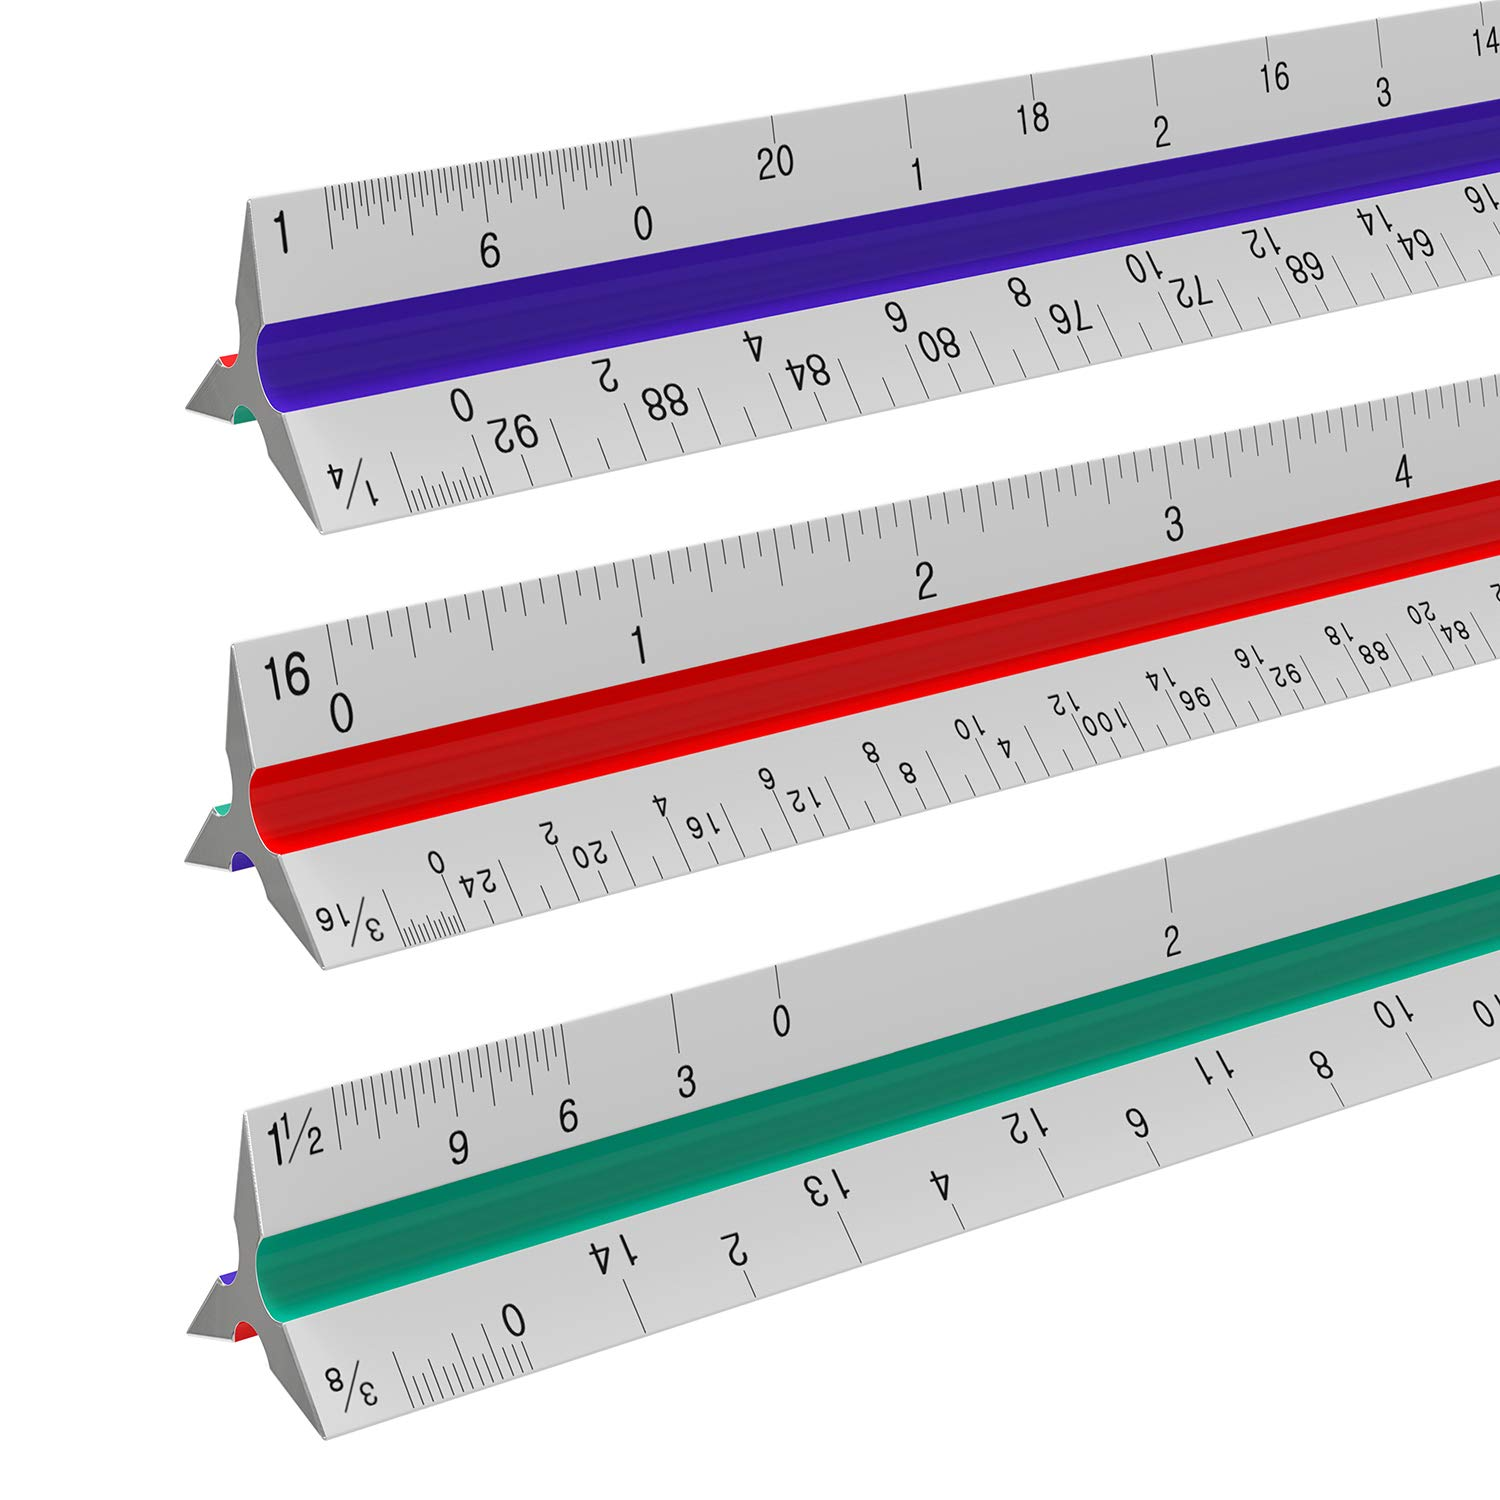 Architectural Scale Ruler- 12'' AluminumTriangular Architect ScaleRuler for Engineering Scale, Drafting Ruler, Metal Scale Ruler, Blueprint - with Imperial Measurements by Leyaron